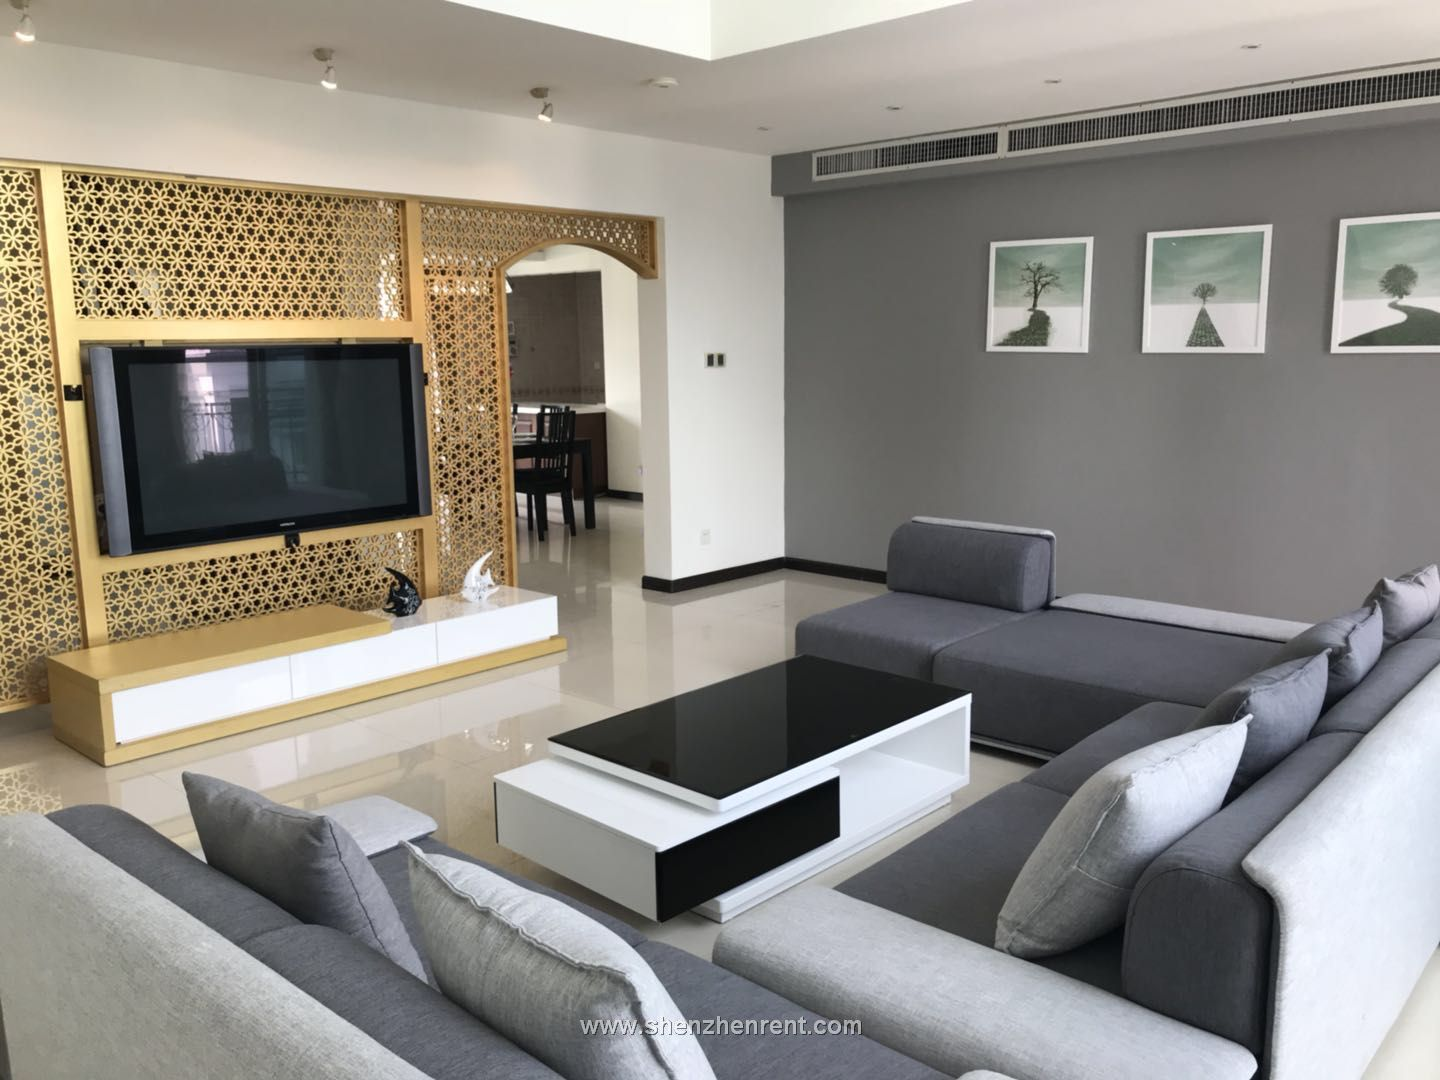 New decoration 5 bedrooms apartment in shekou for rent